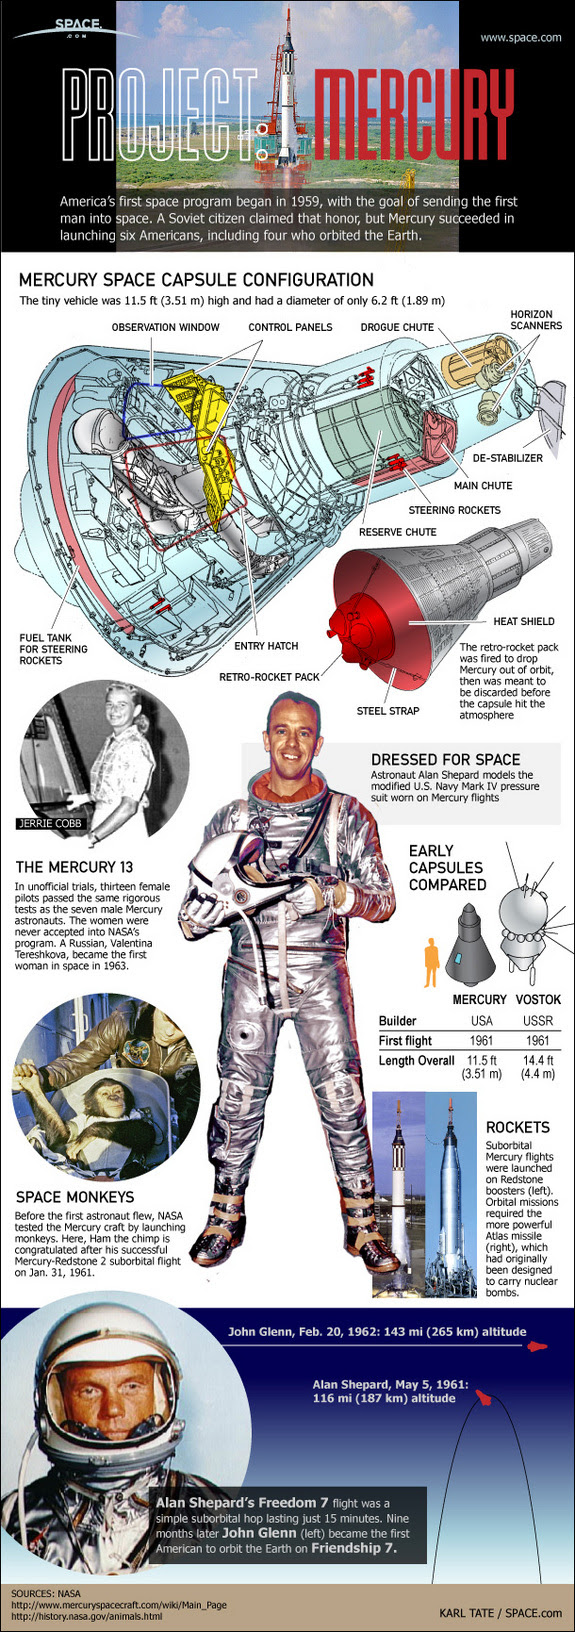 See how the first American astronauts flew in space on NASA's Mercury space capsules in this SPACE.com infographic.